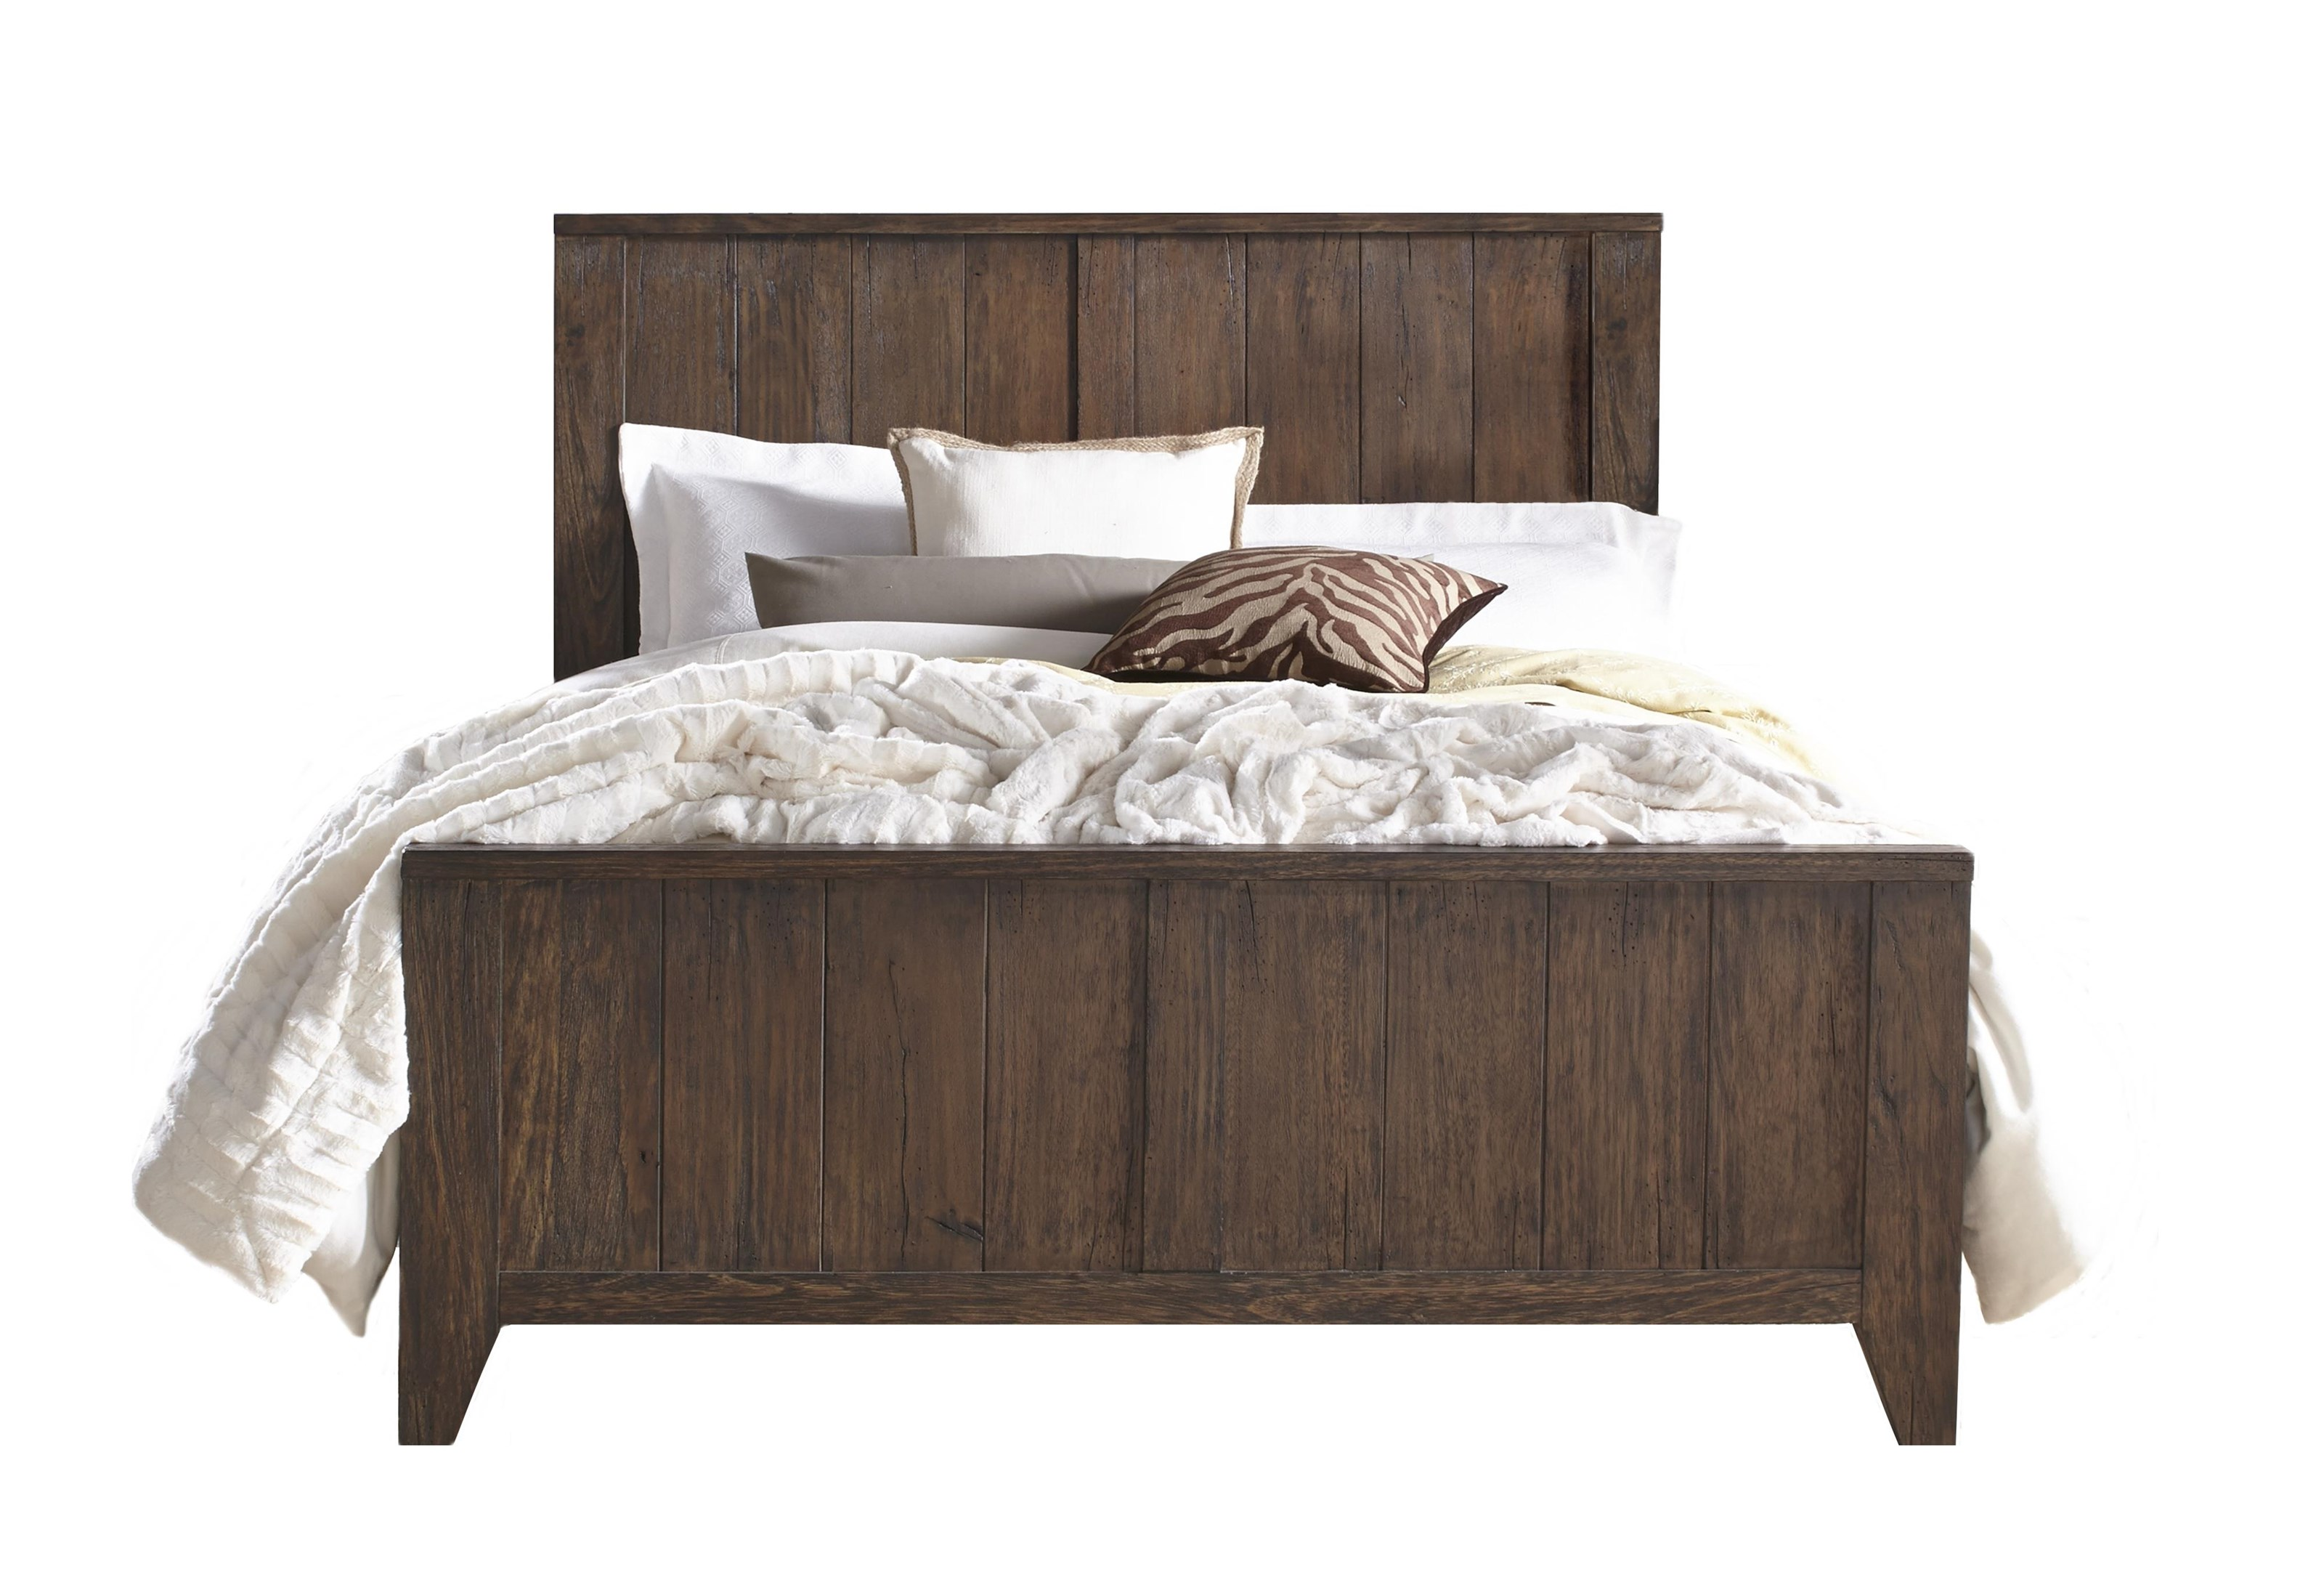 Modus International Corinth California King Bed - Item Number: 7W 80 L6 Cornith